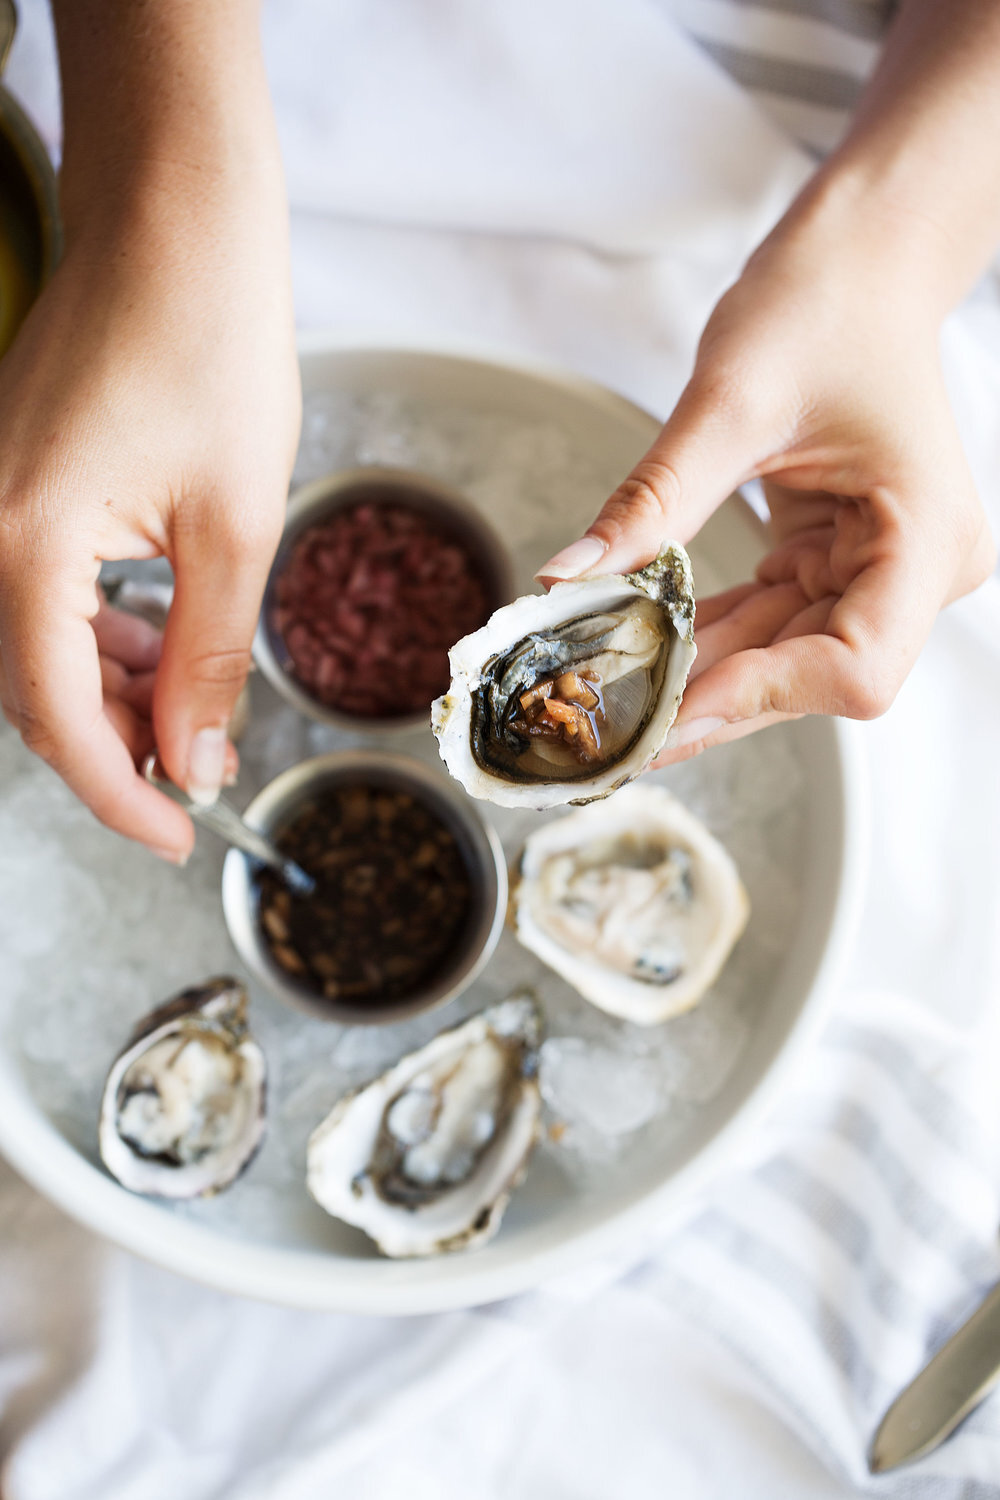 Oysters: How to Shuck & Serve Them